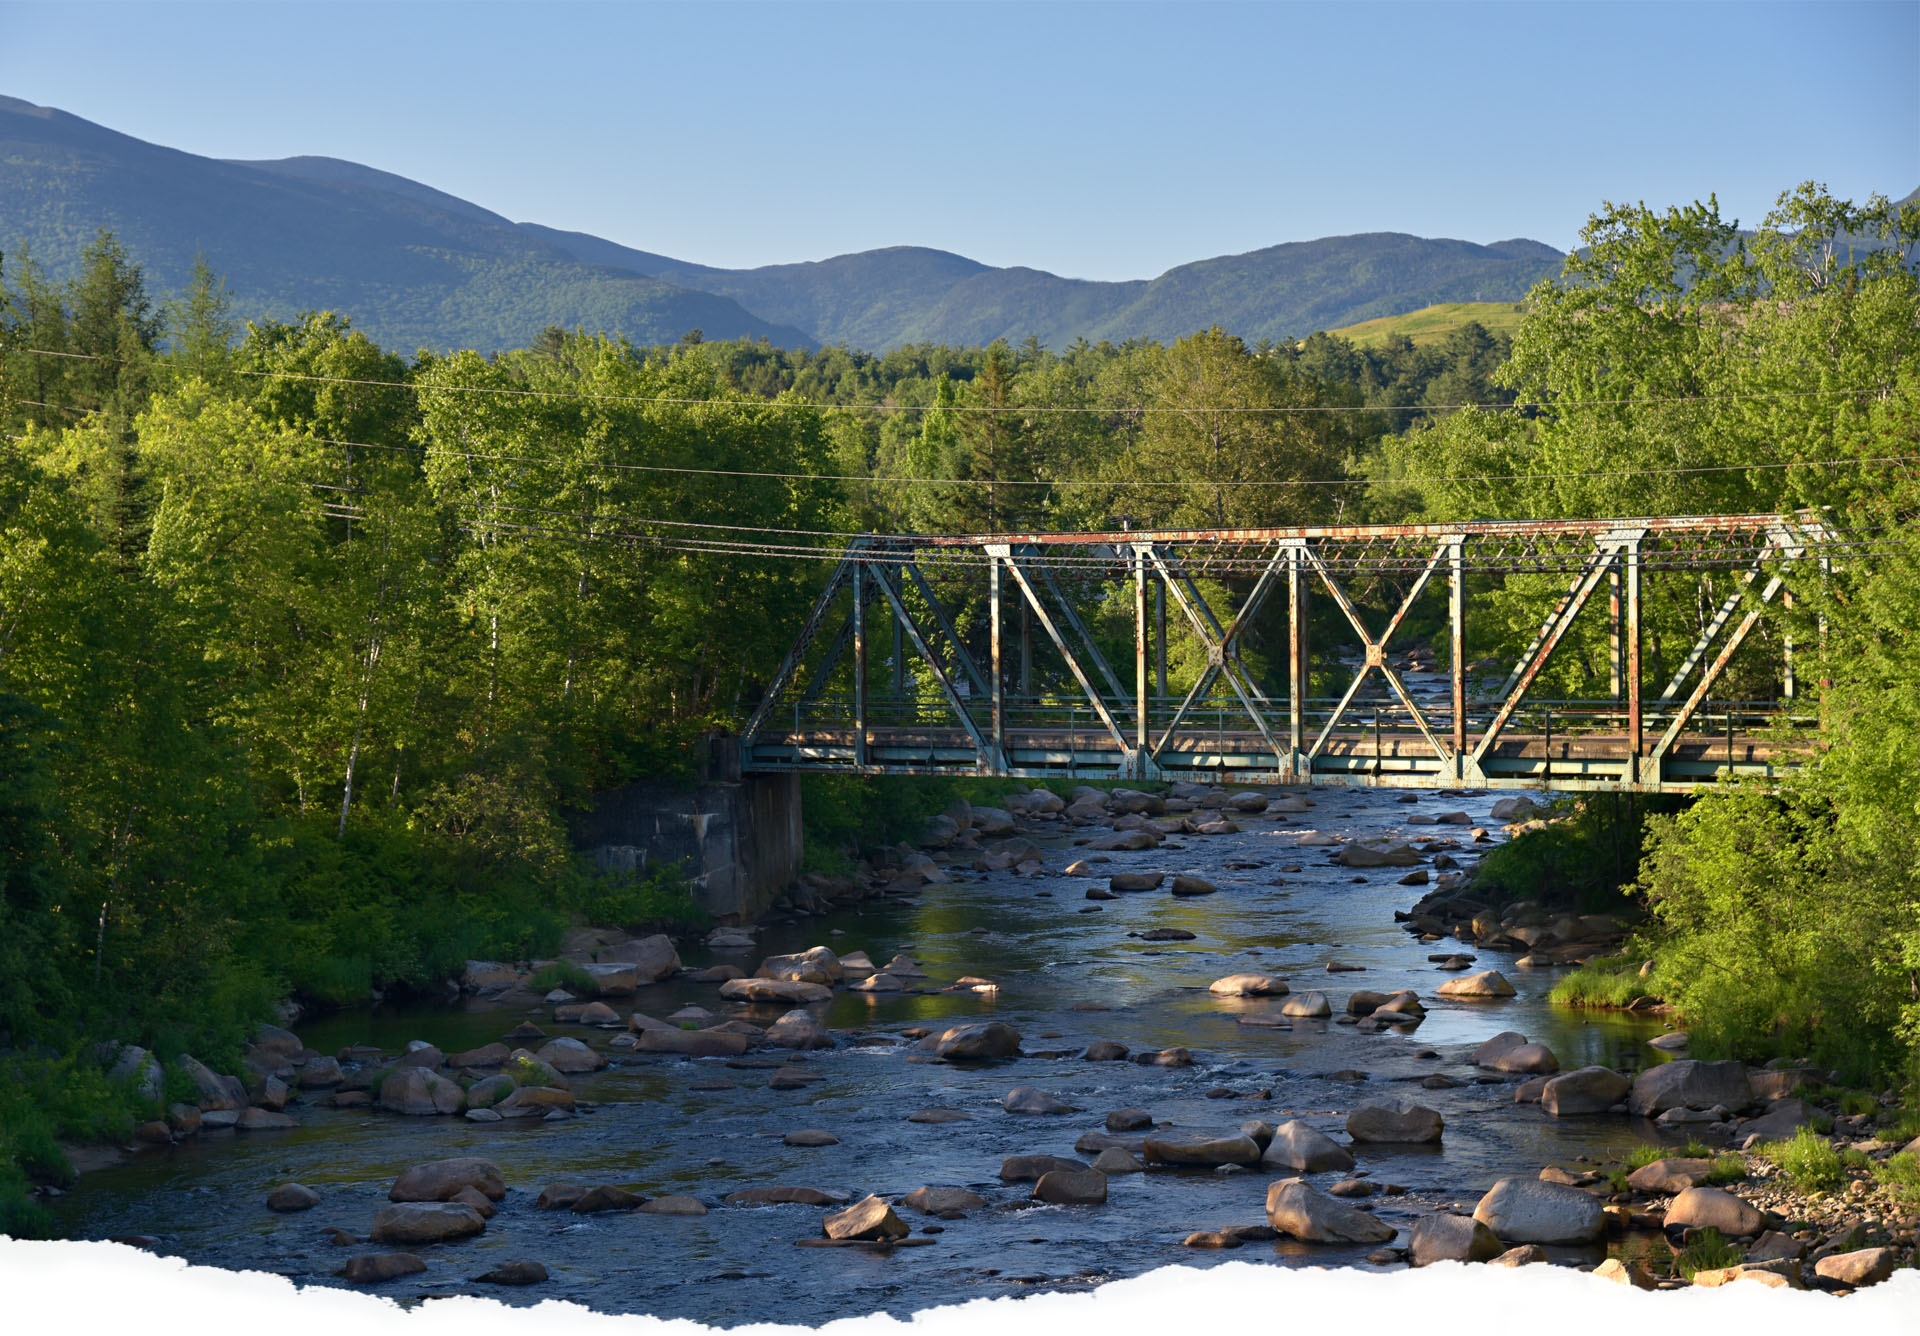 Picture of Pierce Bridge over running water in Bethlehem New Hampshire